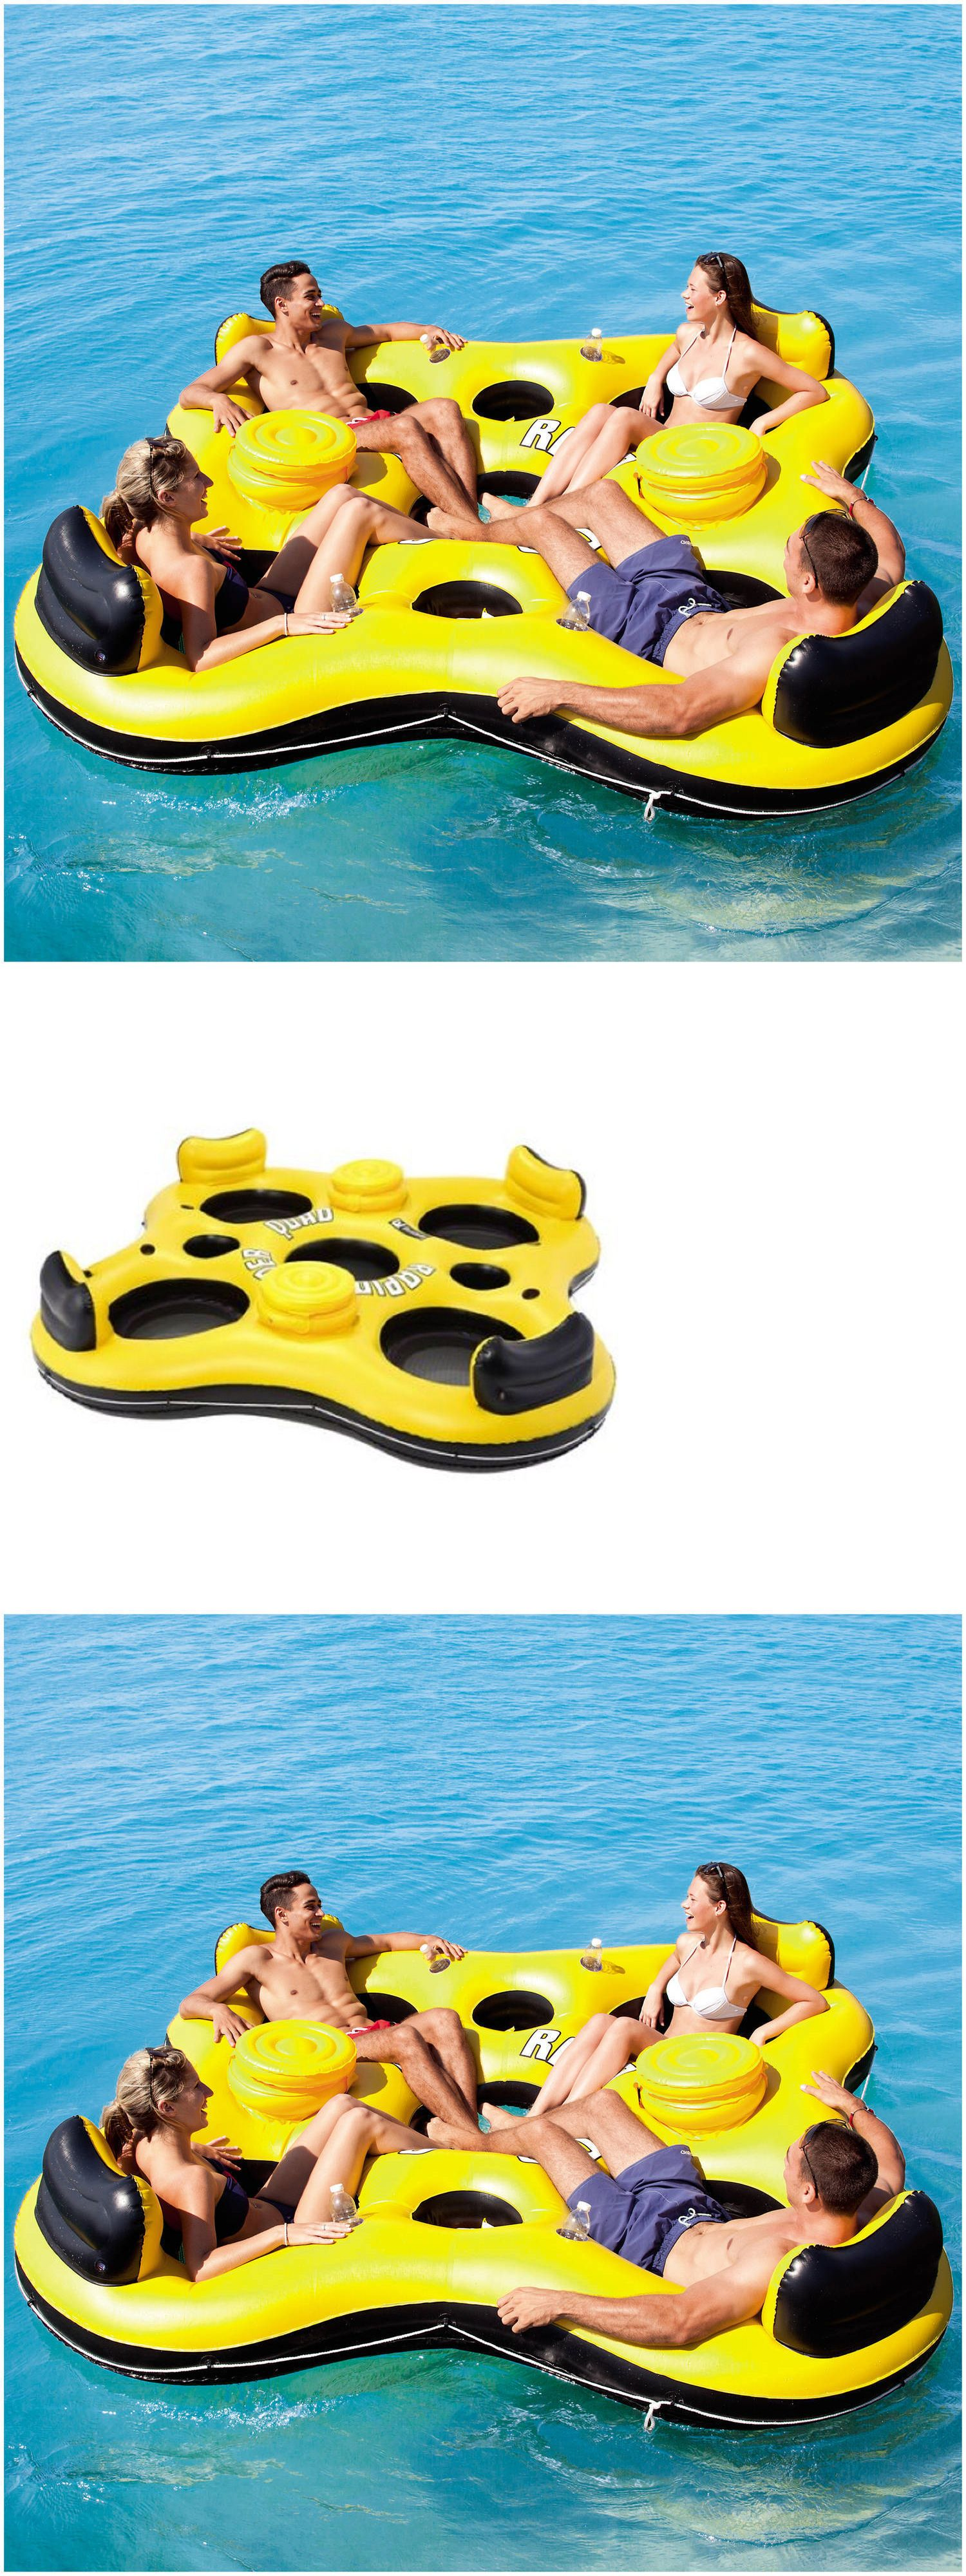 Inflatable Floats and Tubes Pool Toys For Adults Floats